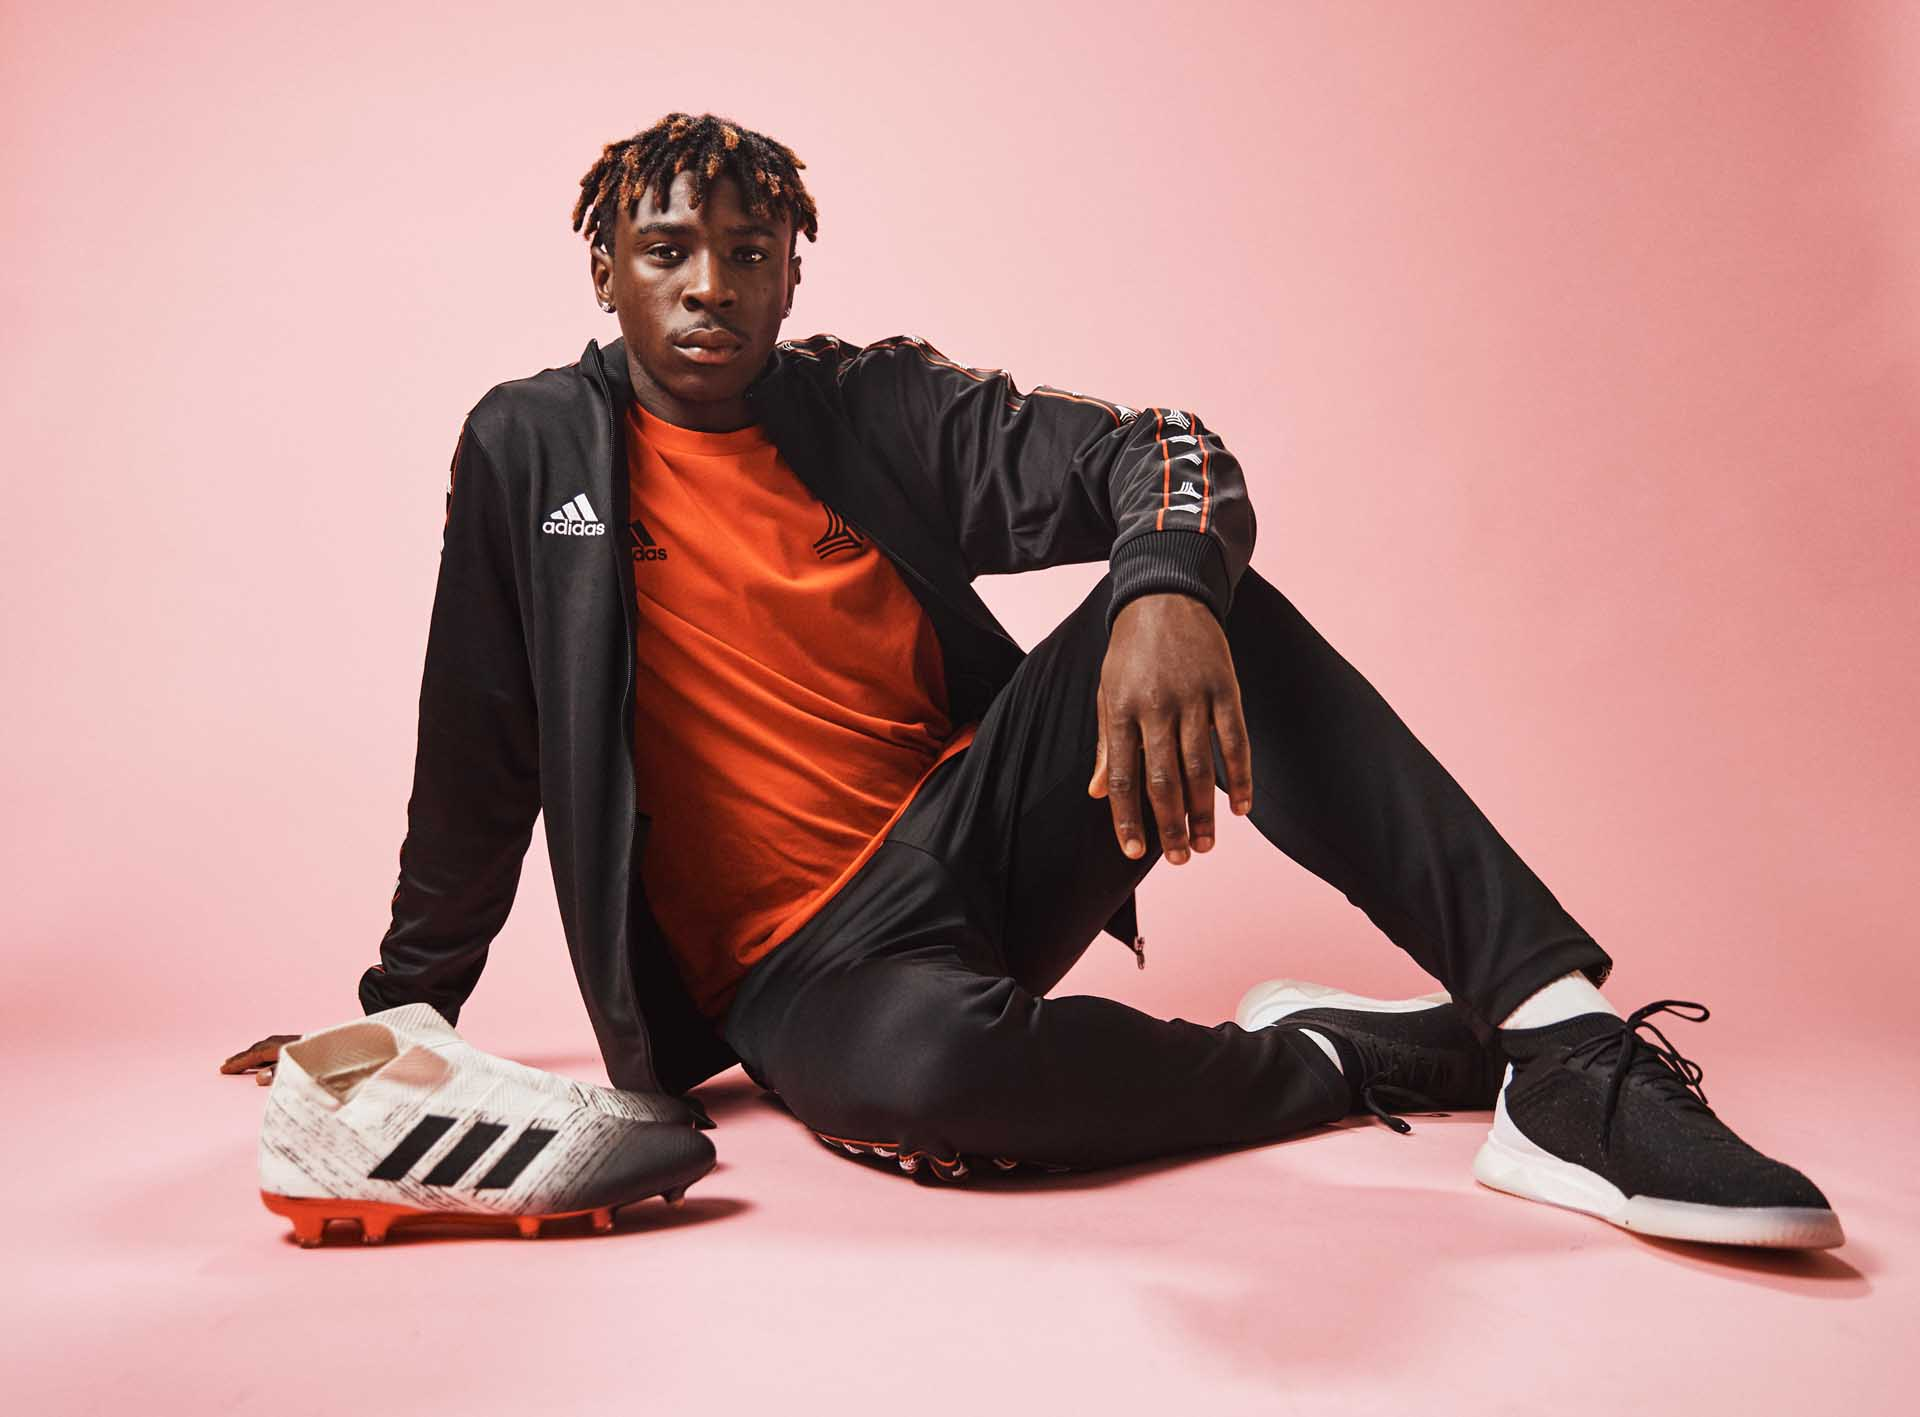 Soccerbible Sessions 1 Moise Kean Soccerbible